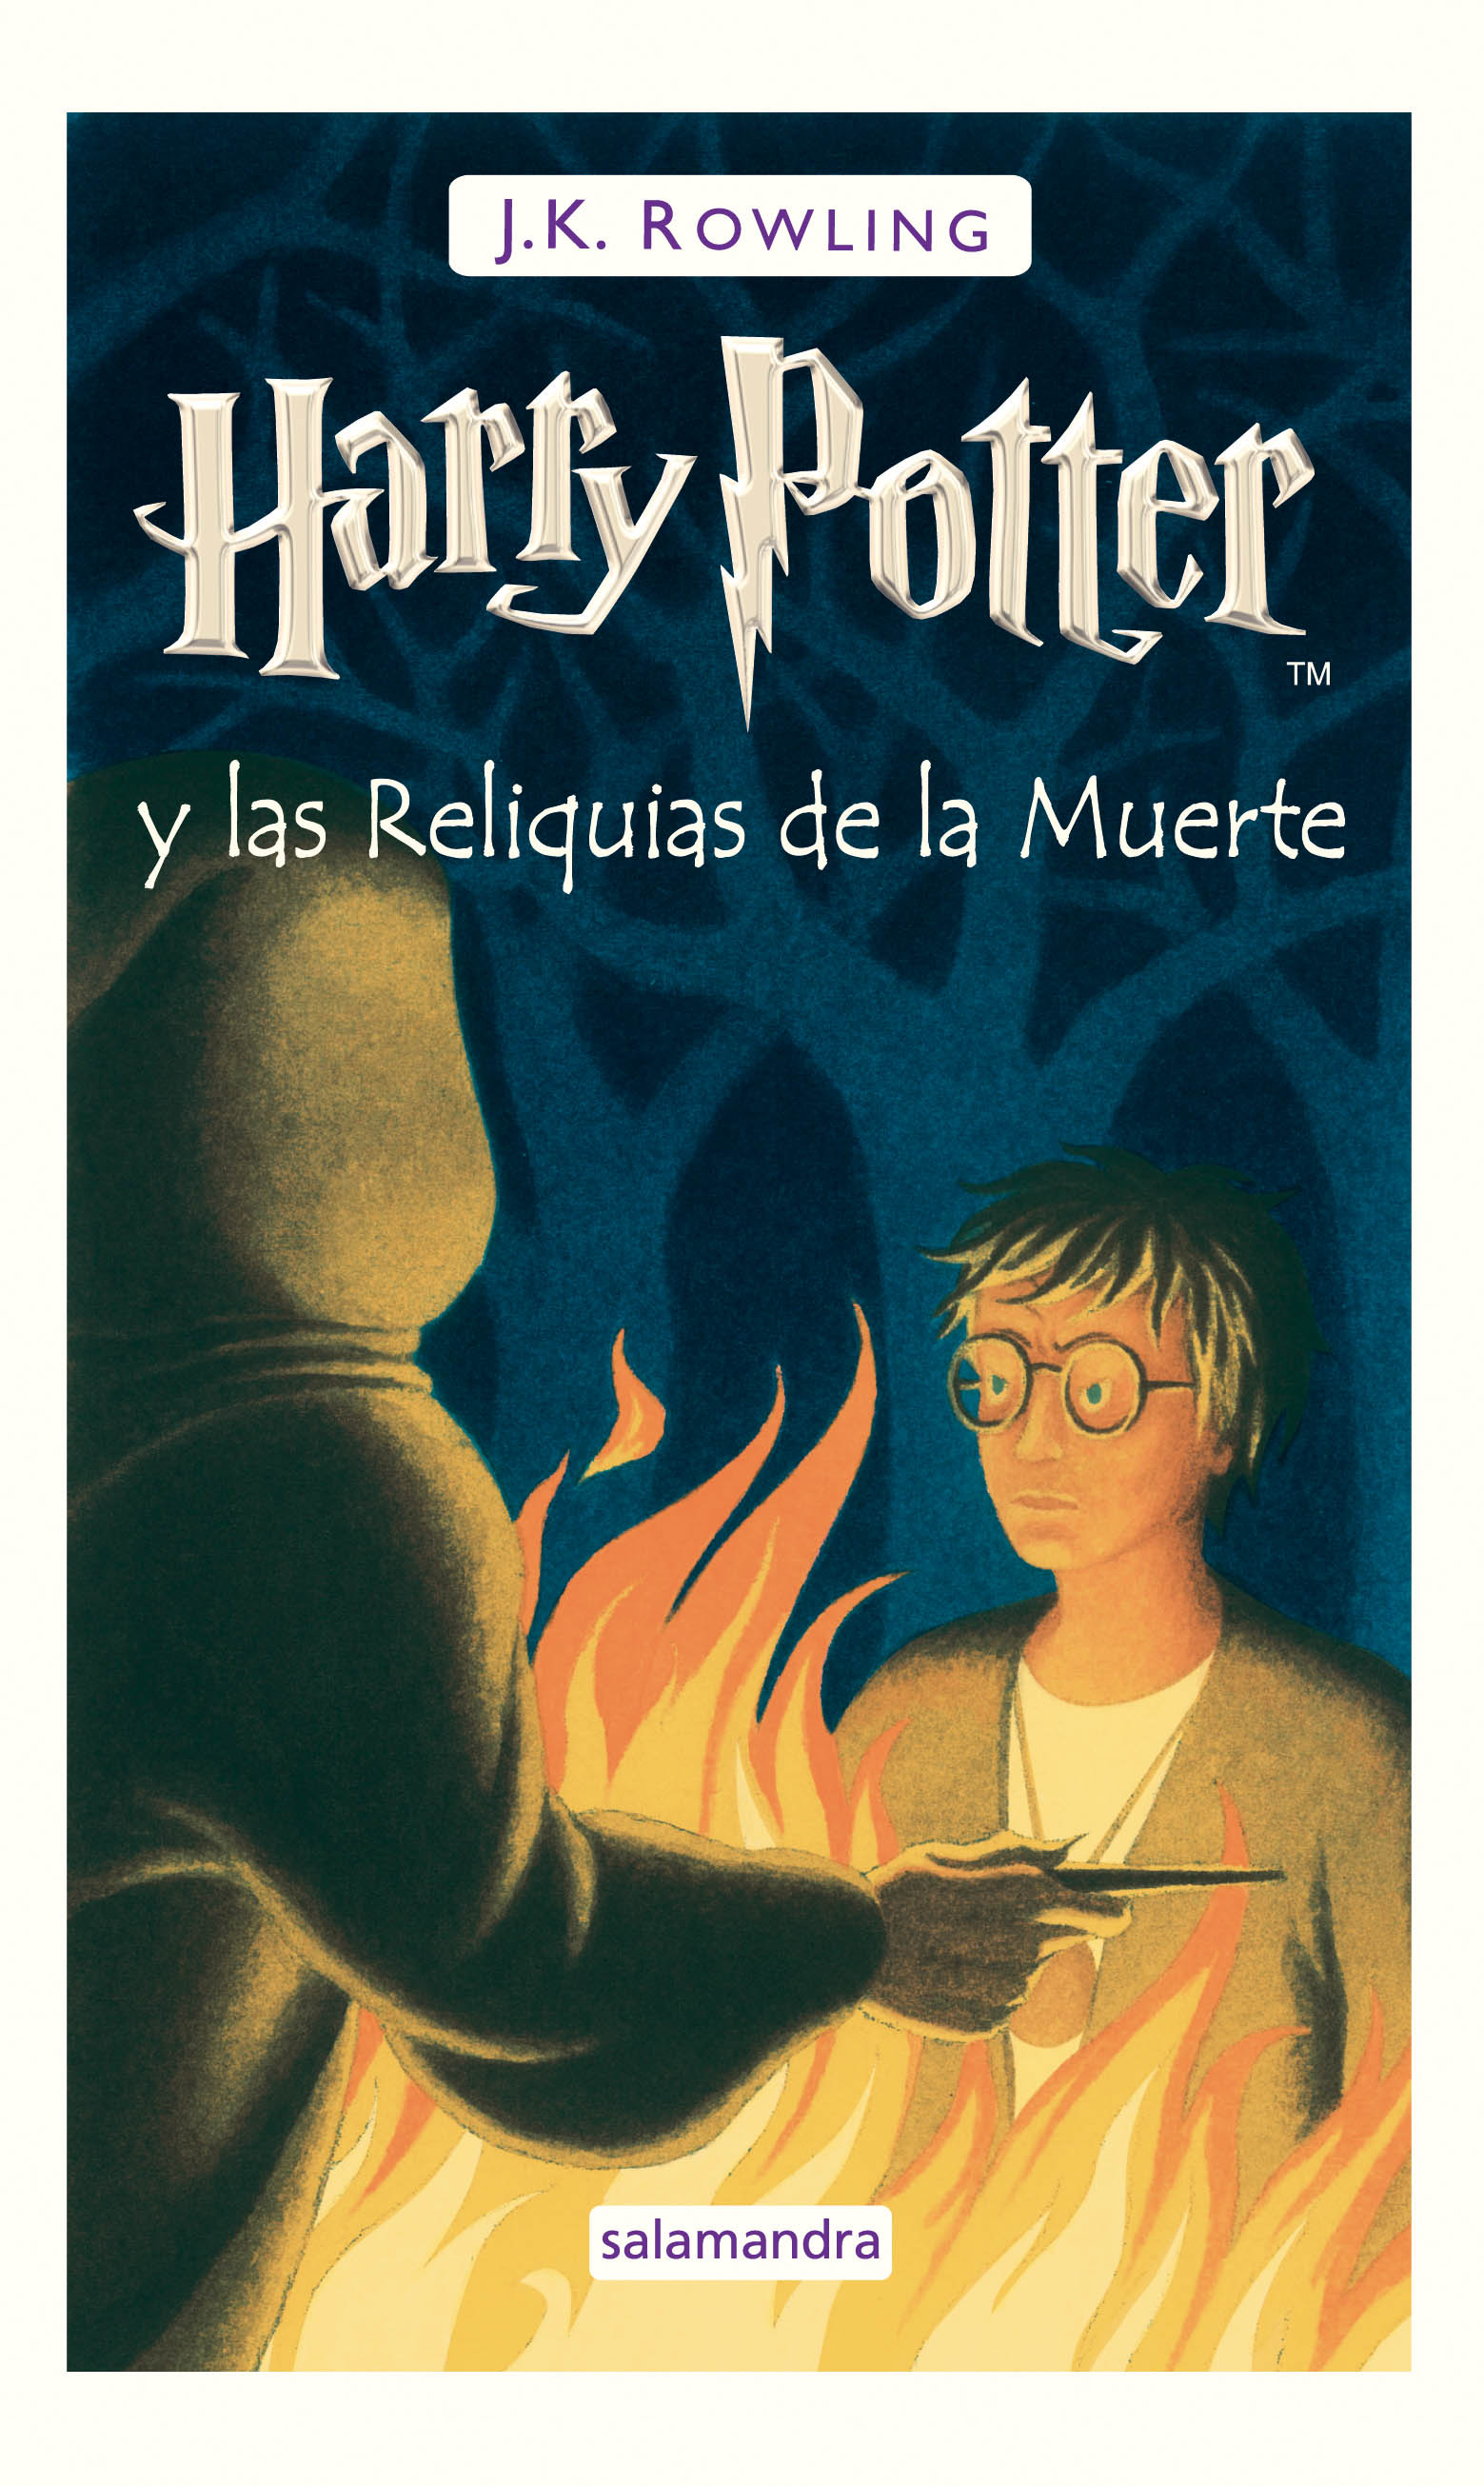 Harry Potter y las Reliquias de la Muerte | Harry Potter Wiki ...